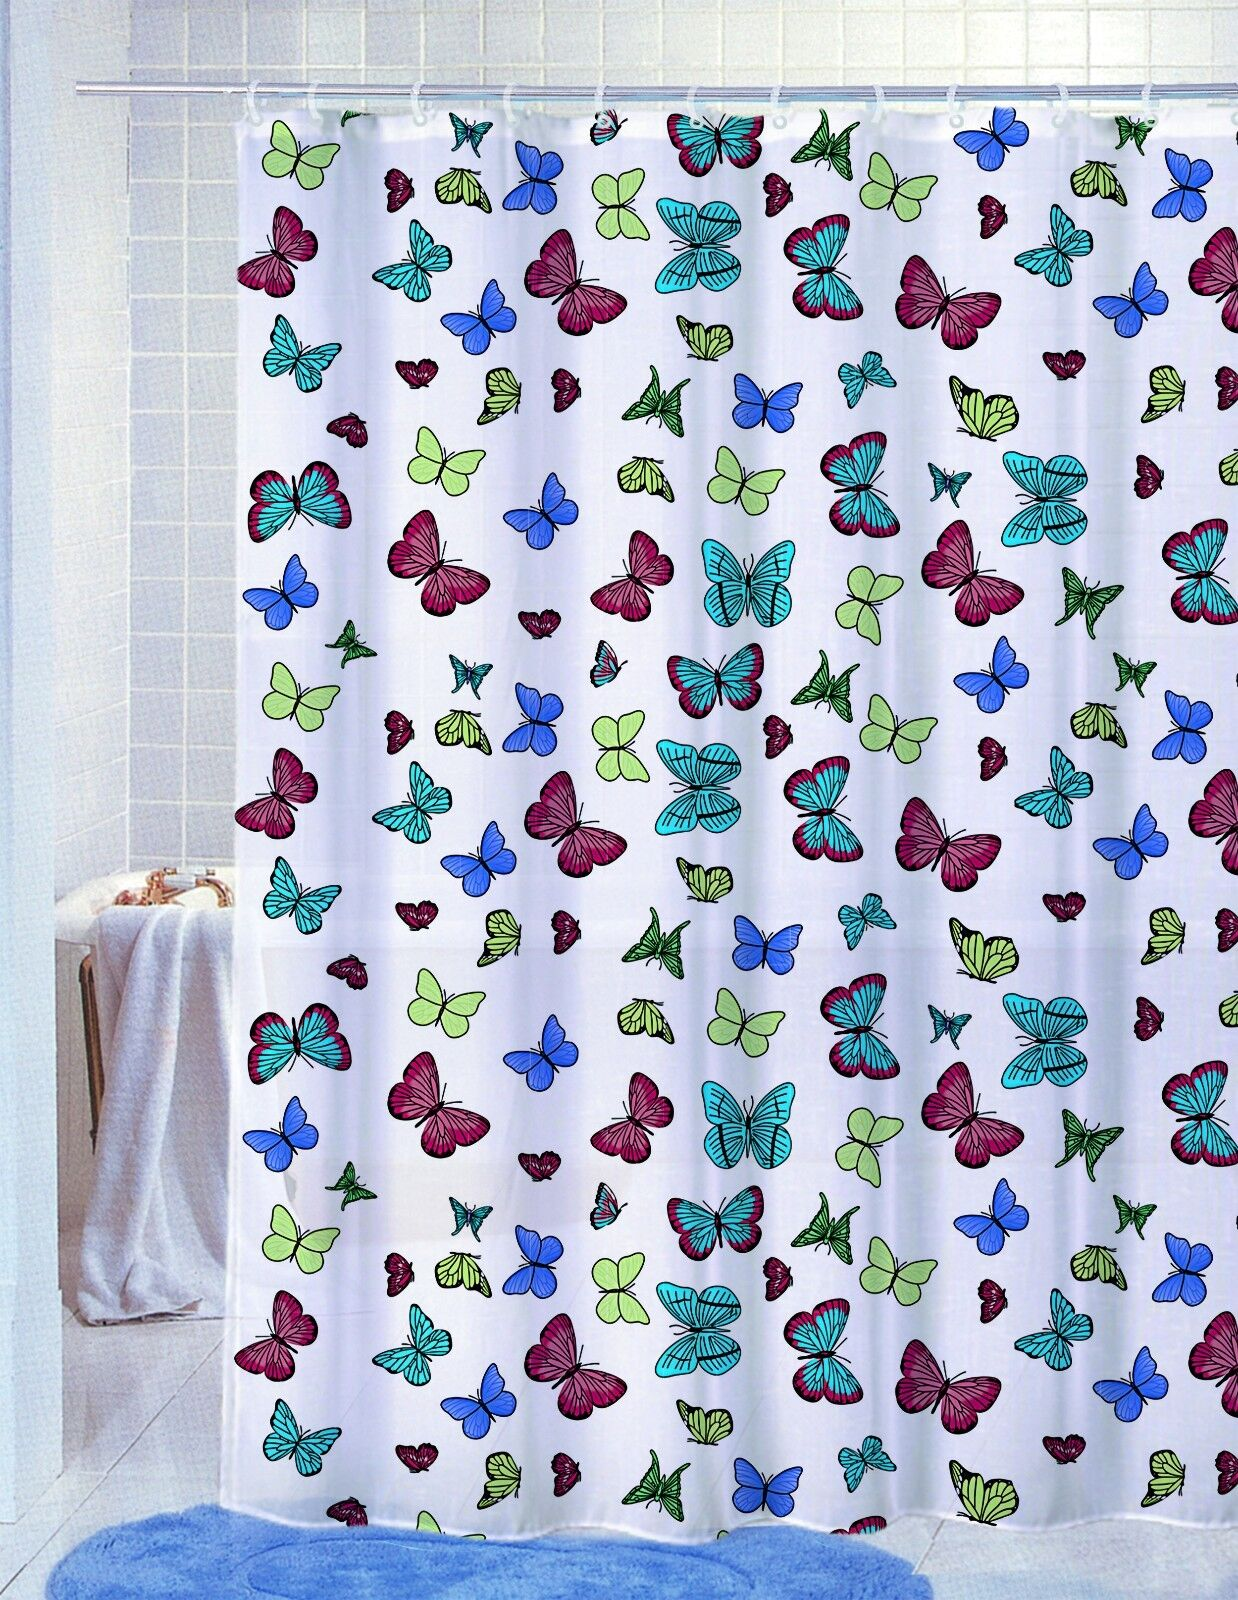 Pvc Free Peva Vinyl Printed Shower Curtain 70x72 Fun